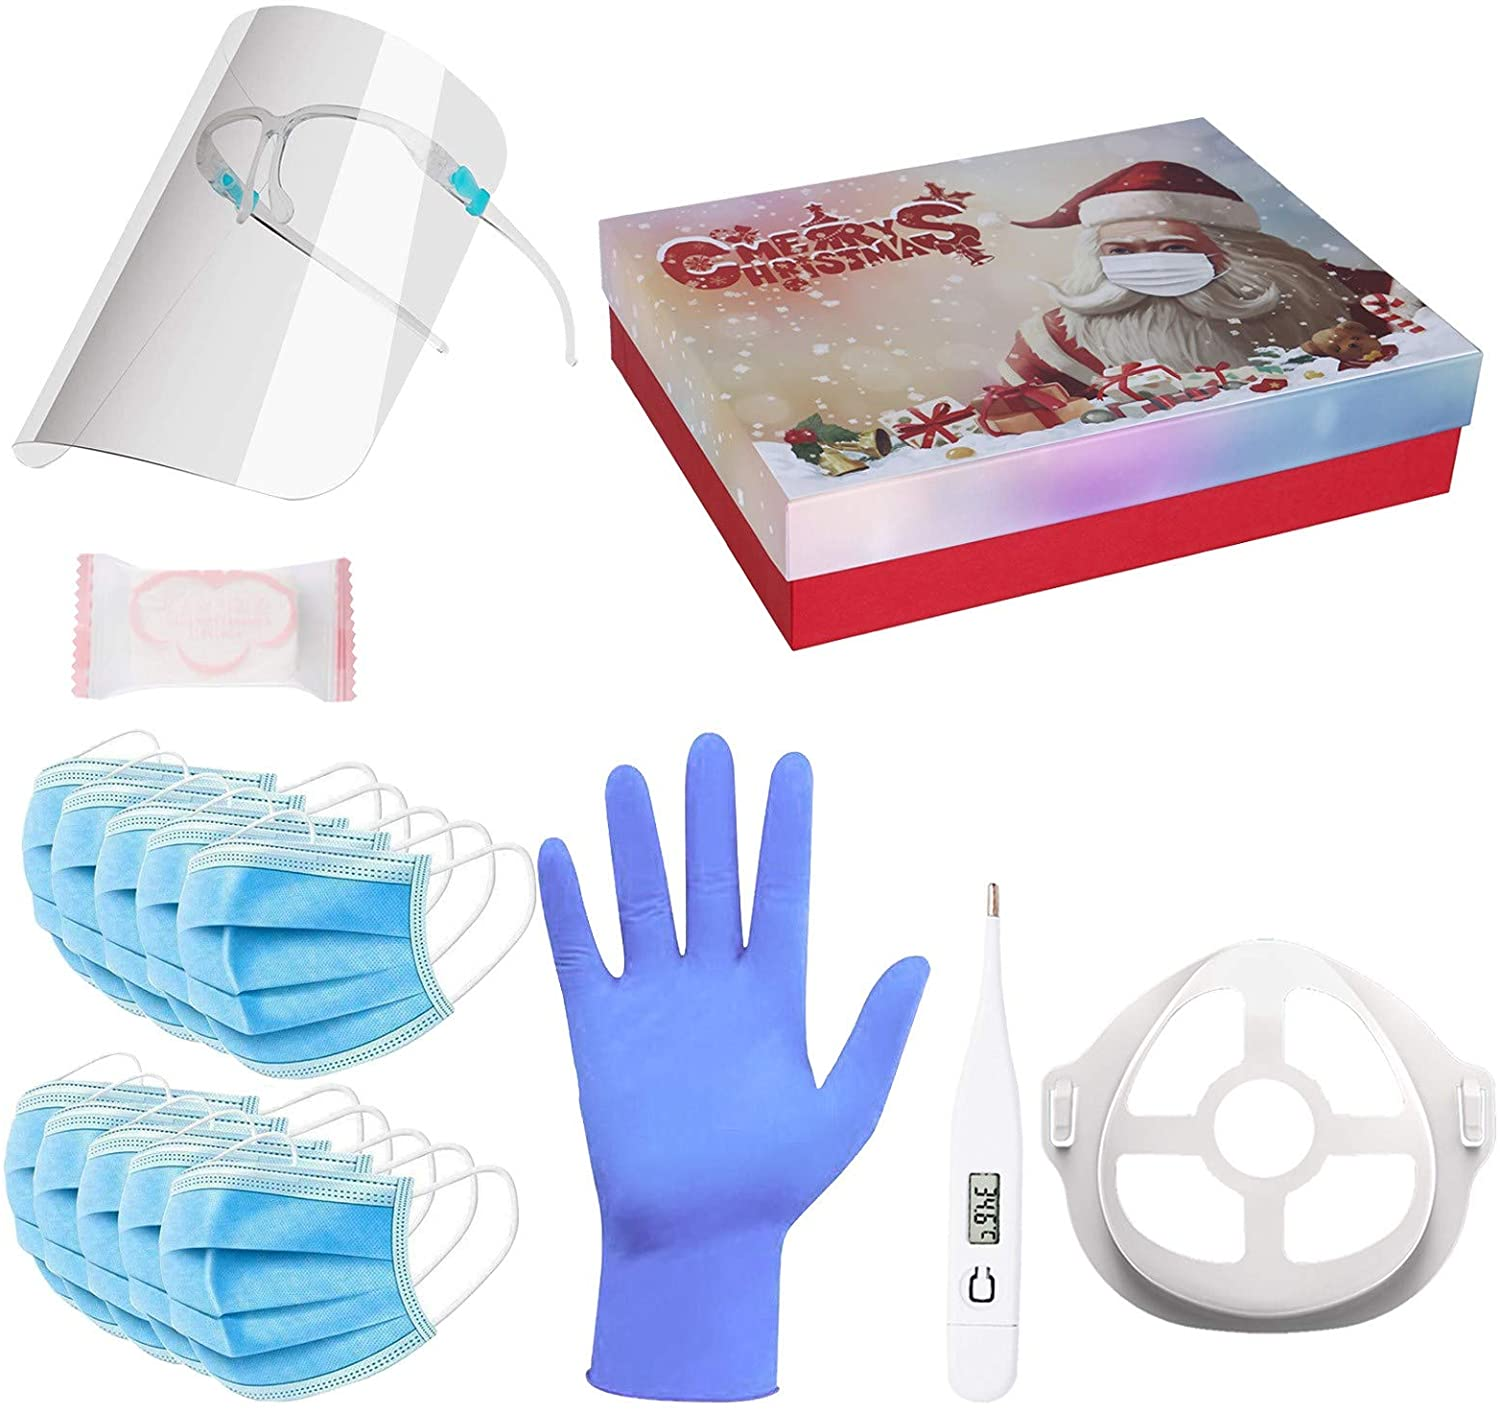 2020 New Christmas Gifts, Christmas Luxury Gift Box Set, Including Face Bandanas, Therm0meter, Gl0ves, Holders, Compressed Towel, Bracket 28 Pack Gifts